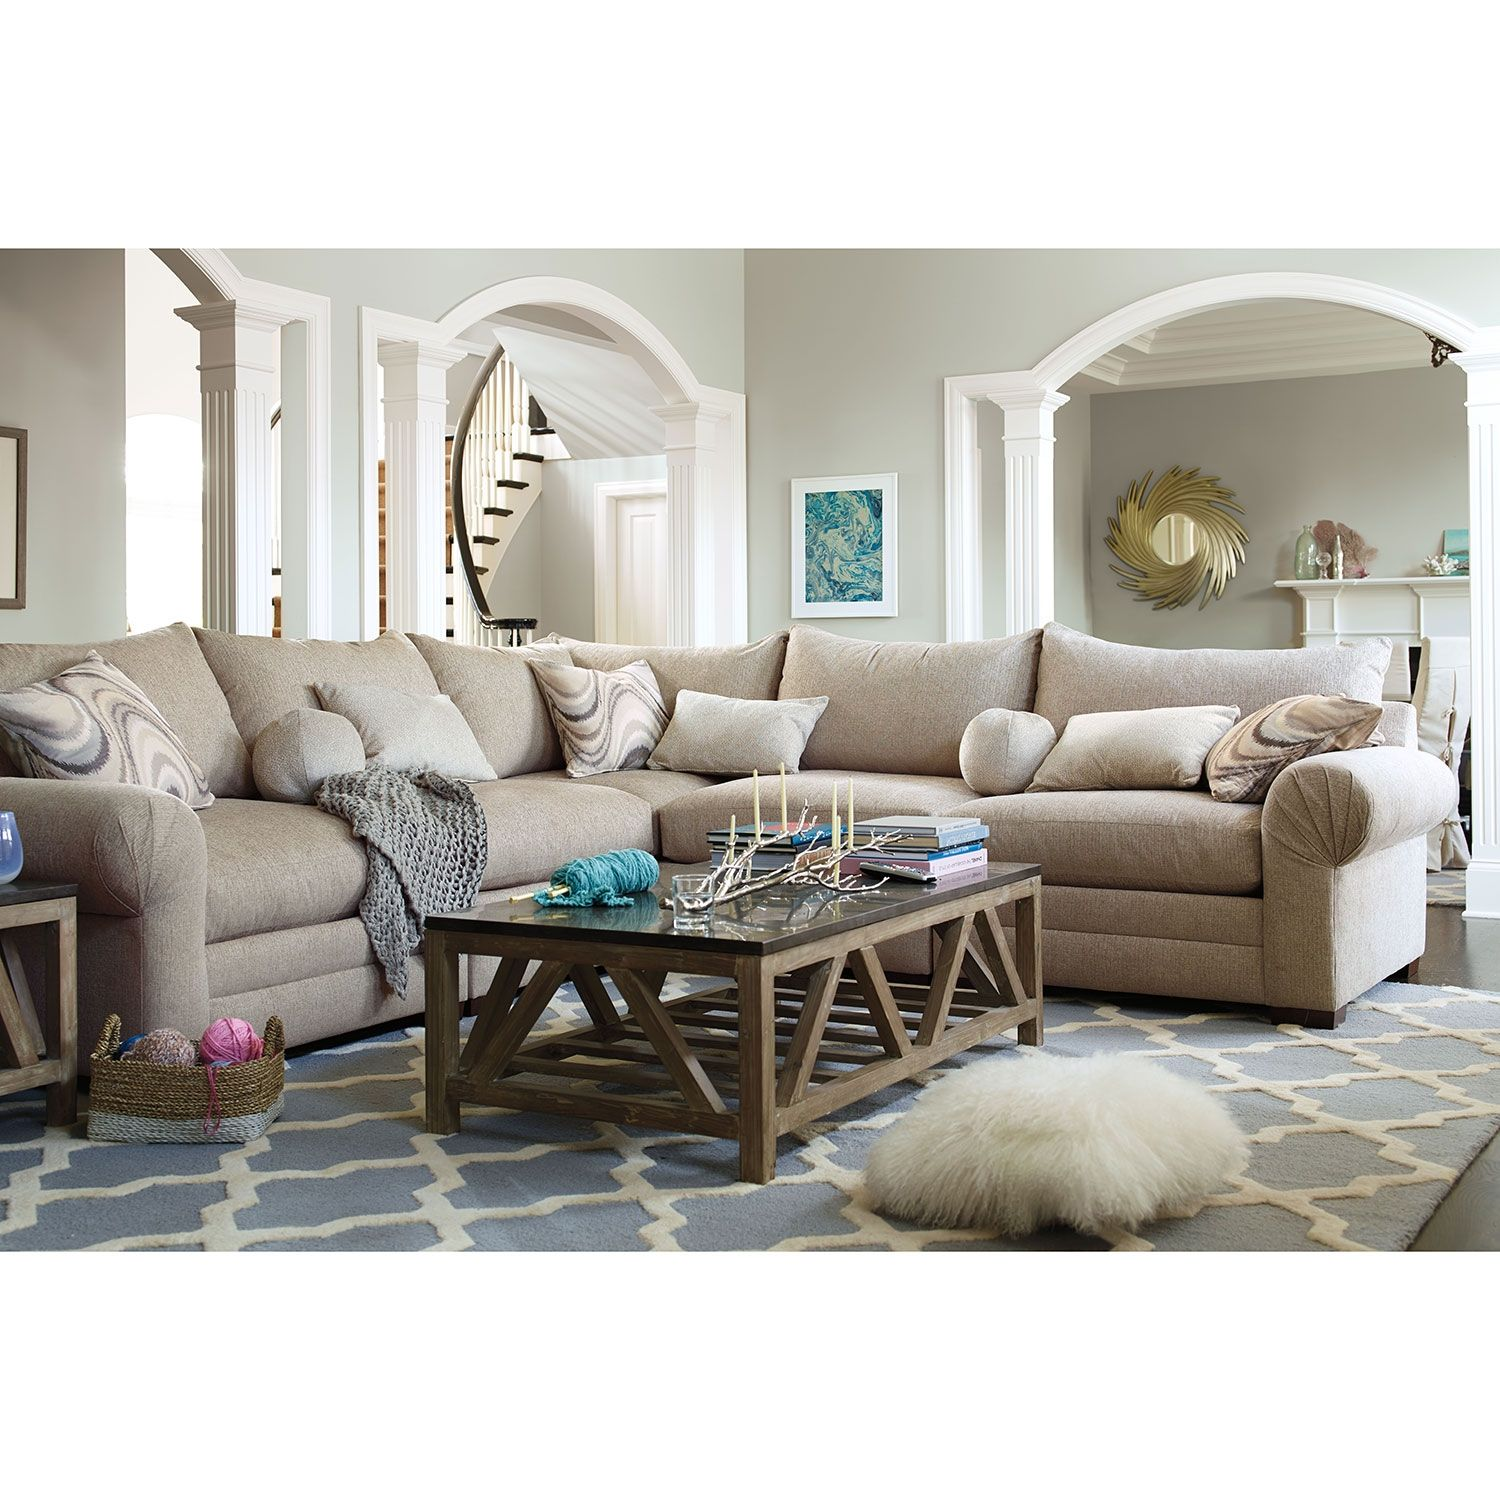 Wilshire 5 Pc. Sectional (Alternate) American Signature